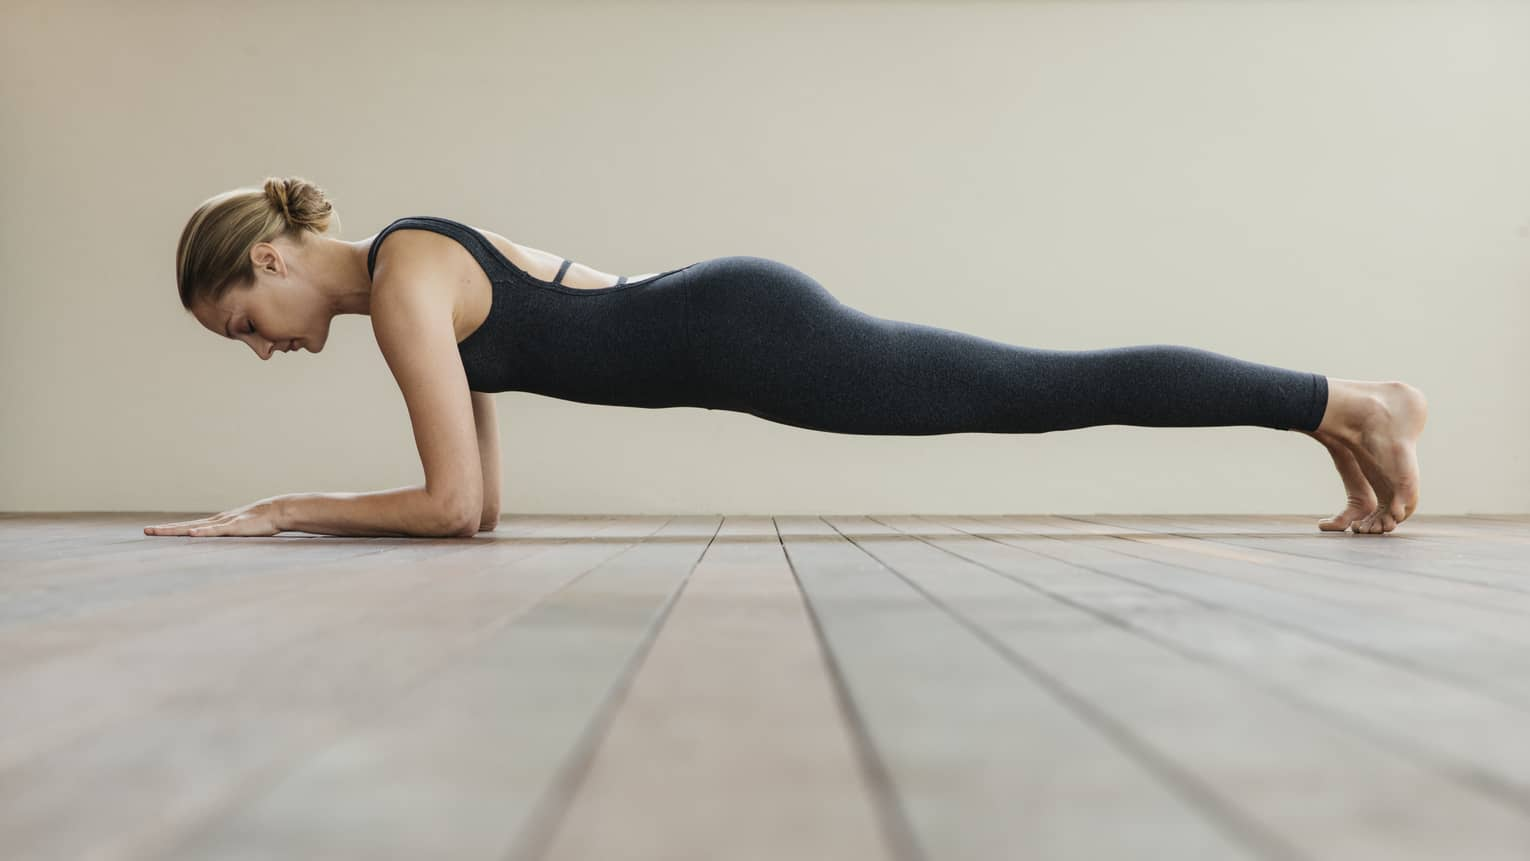 Woman wearing black exercise suit balances above floor in plank pose